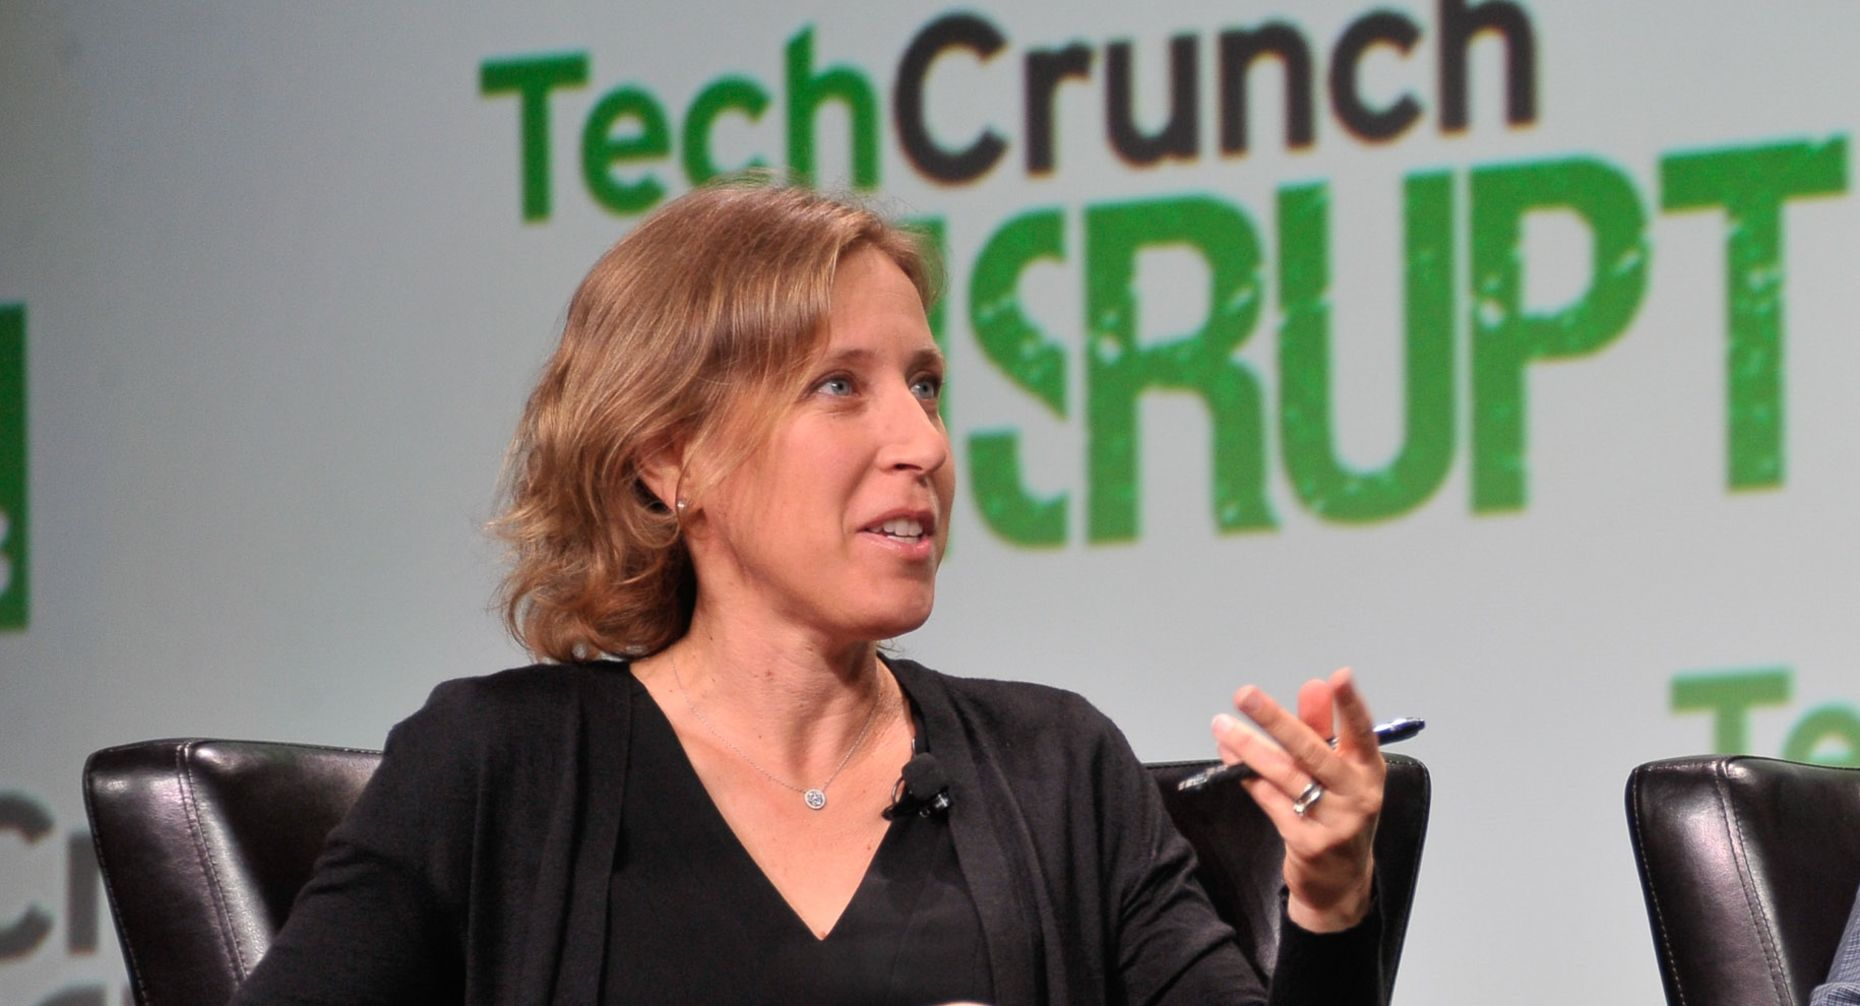 YouTube chief Susan Wojcicki. Photo by TechCrunch.